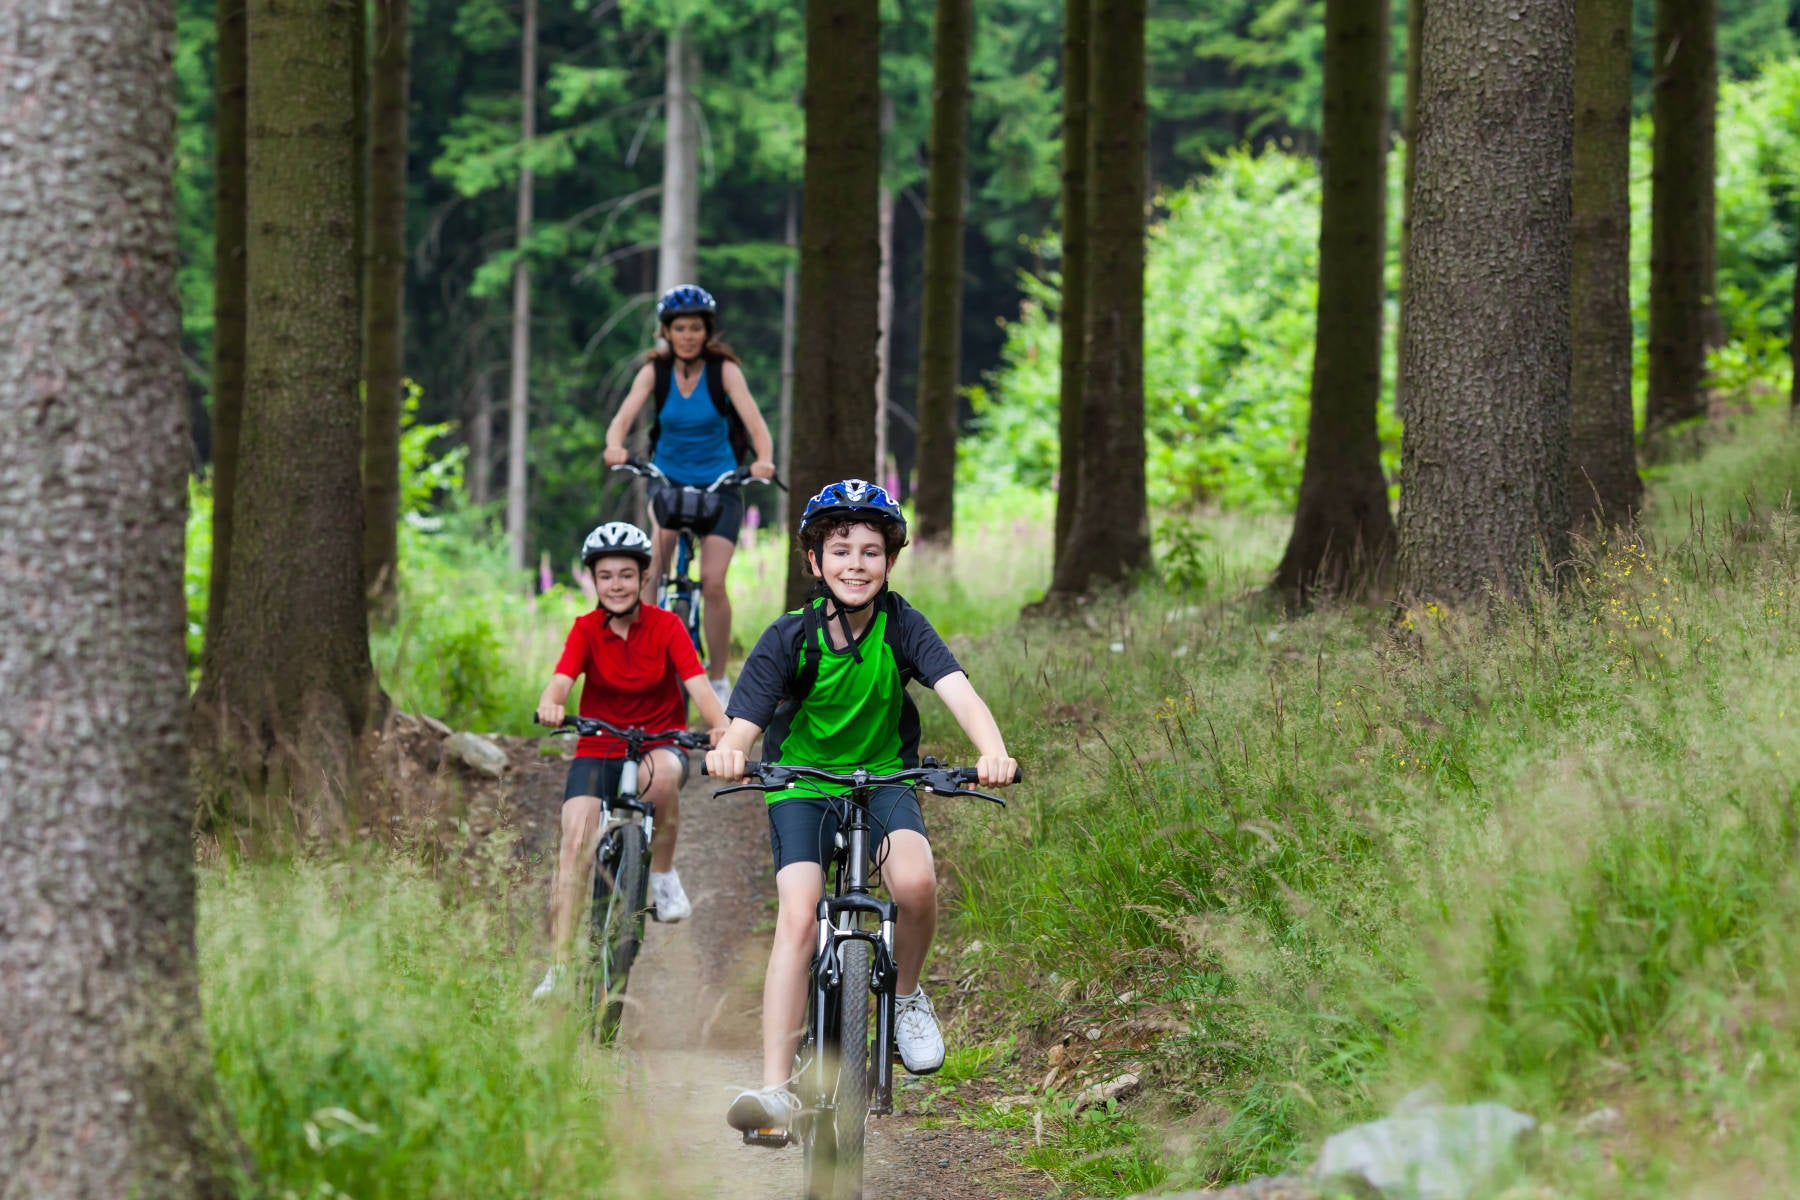 Active family biking on mountain biking trail in the woods on a summer day